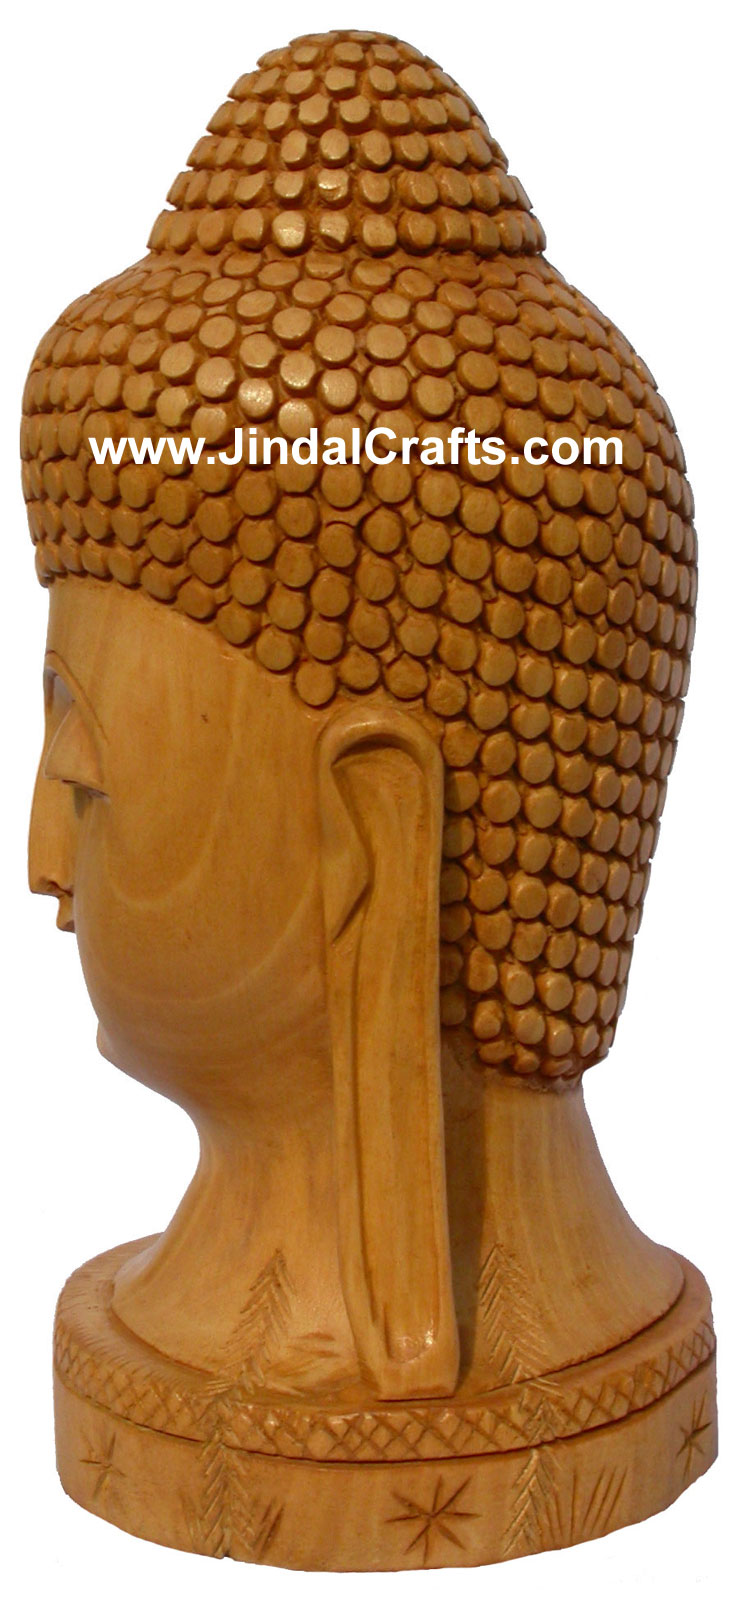 Wood Sculpture Peaceful Buddha Head Figure Buddhist Art